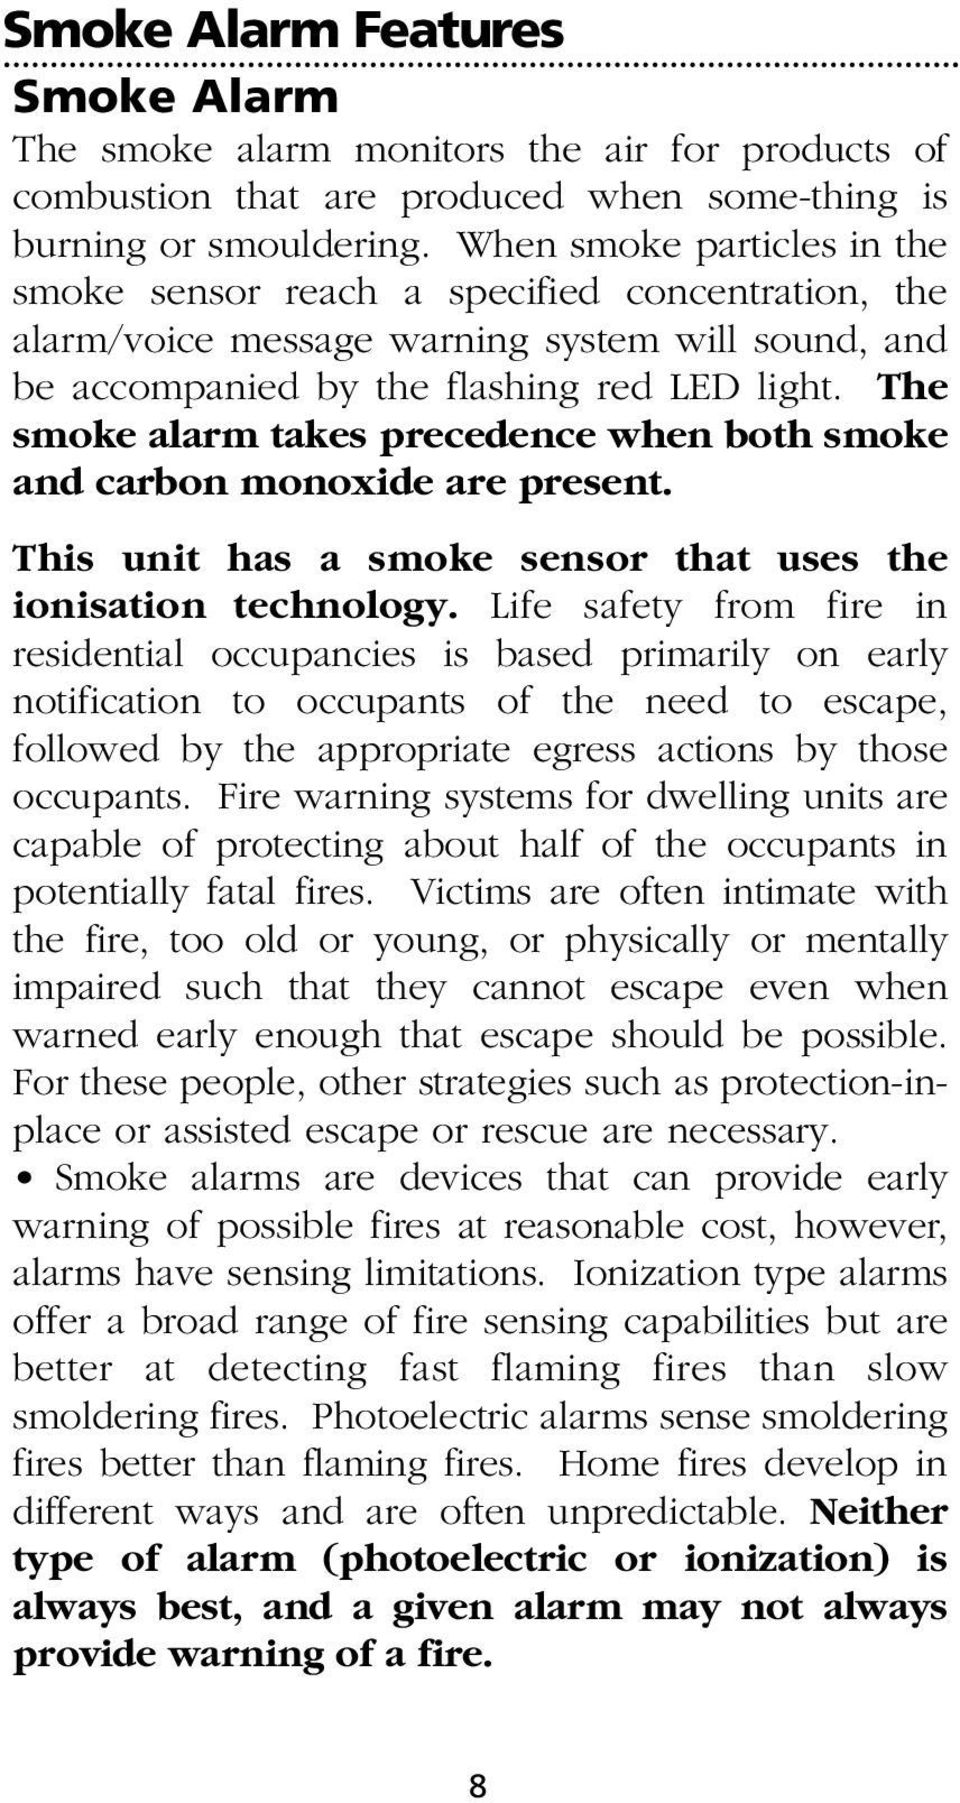 The smoke alarm takes precedence when both smoke and carbon monoxide are present. This unit has a smoke sensor that uses the ionisation technology.